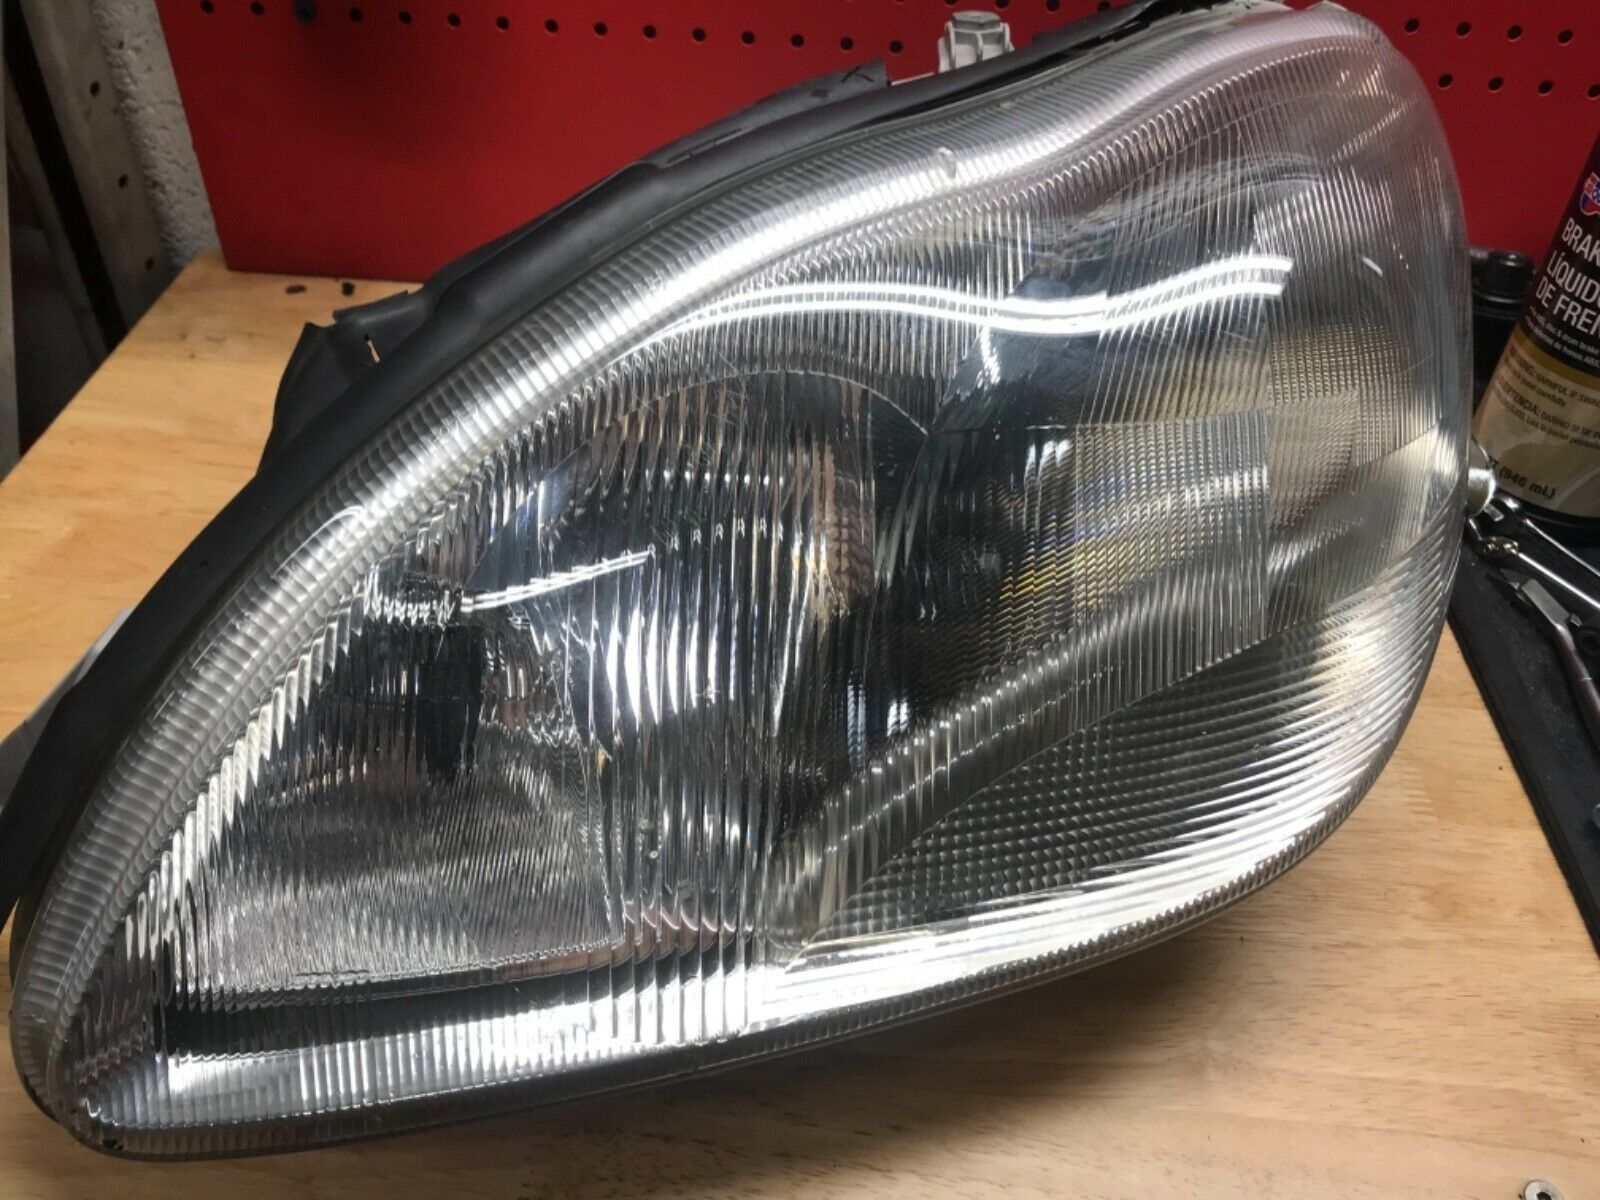 Used Mercedes Benz S500 Headlights For Sale